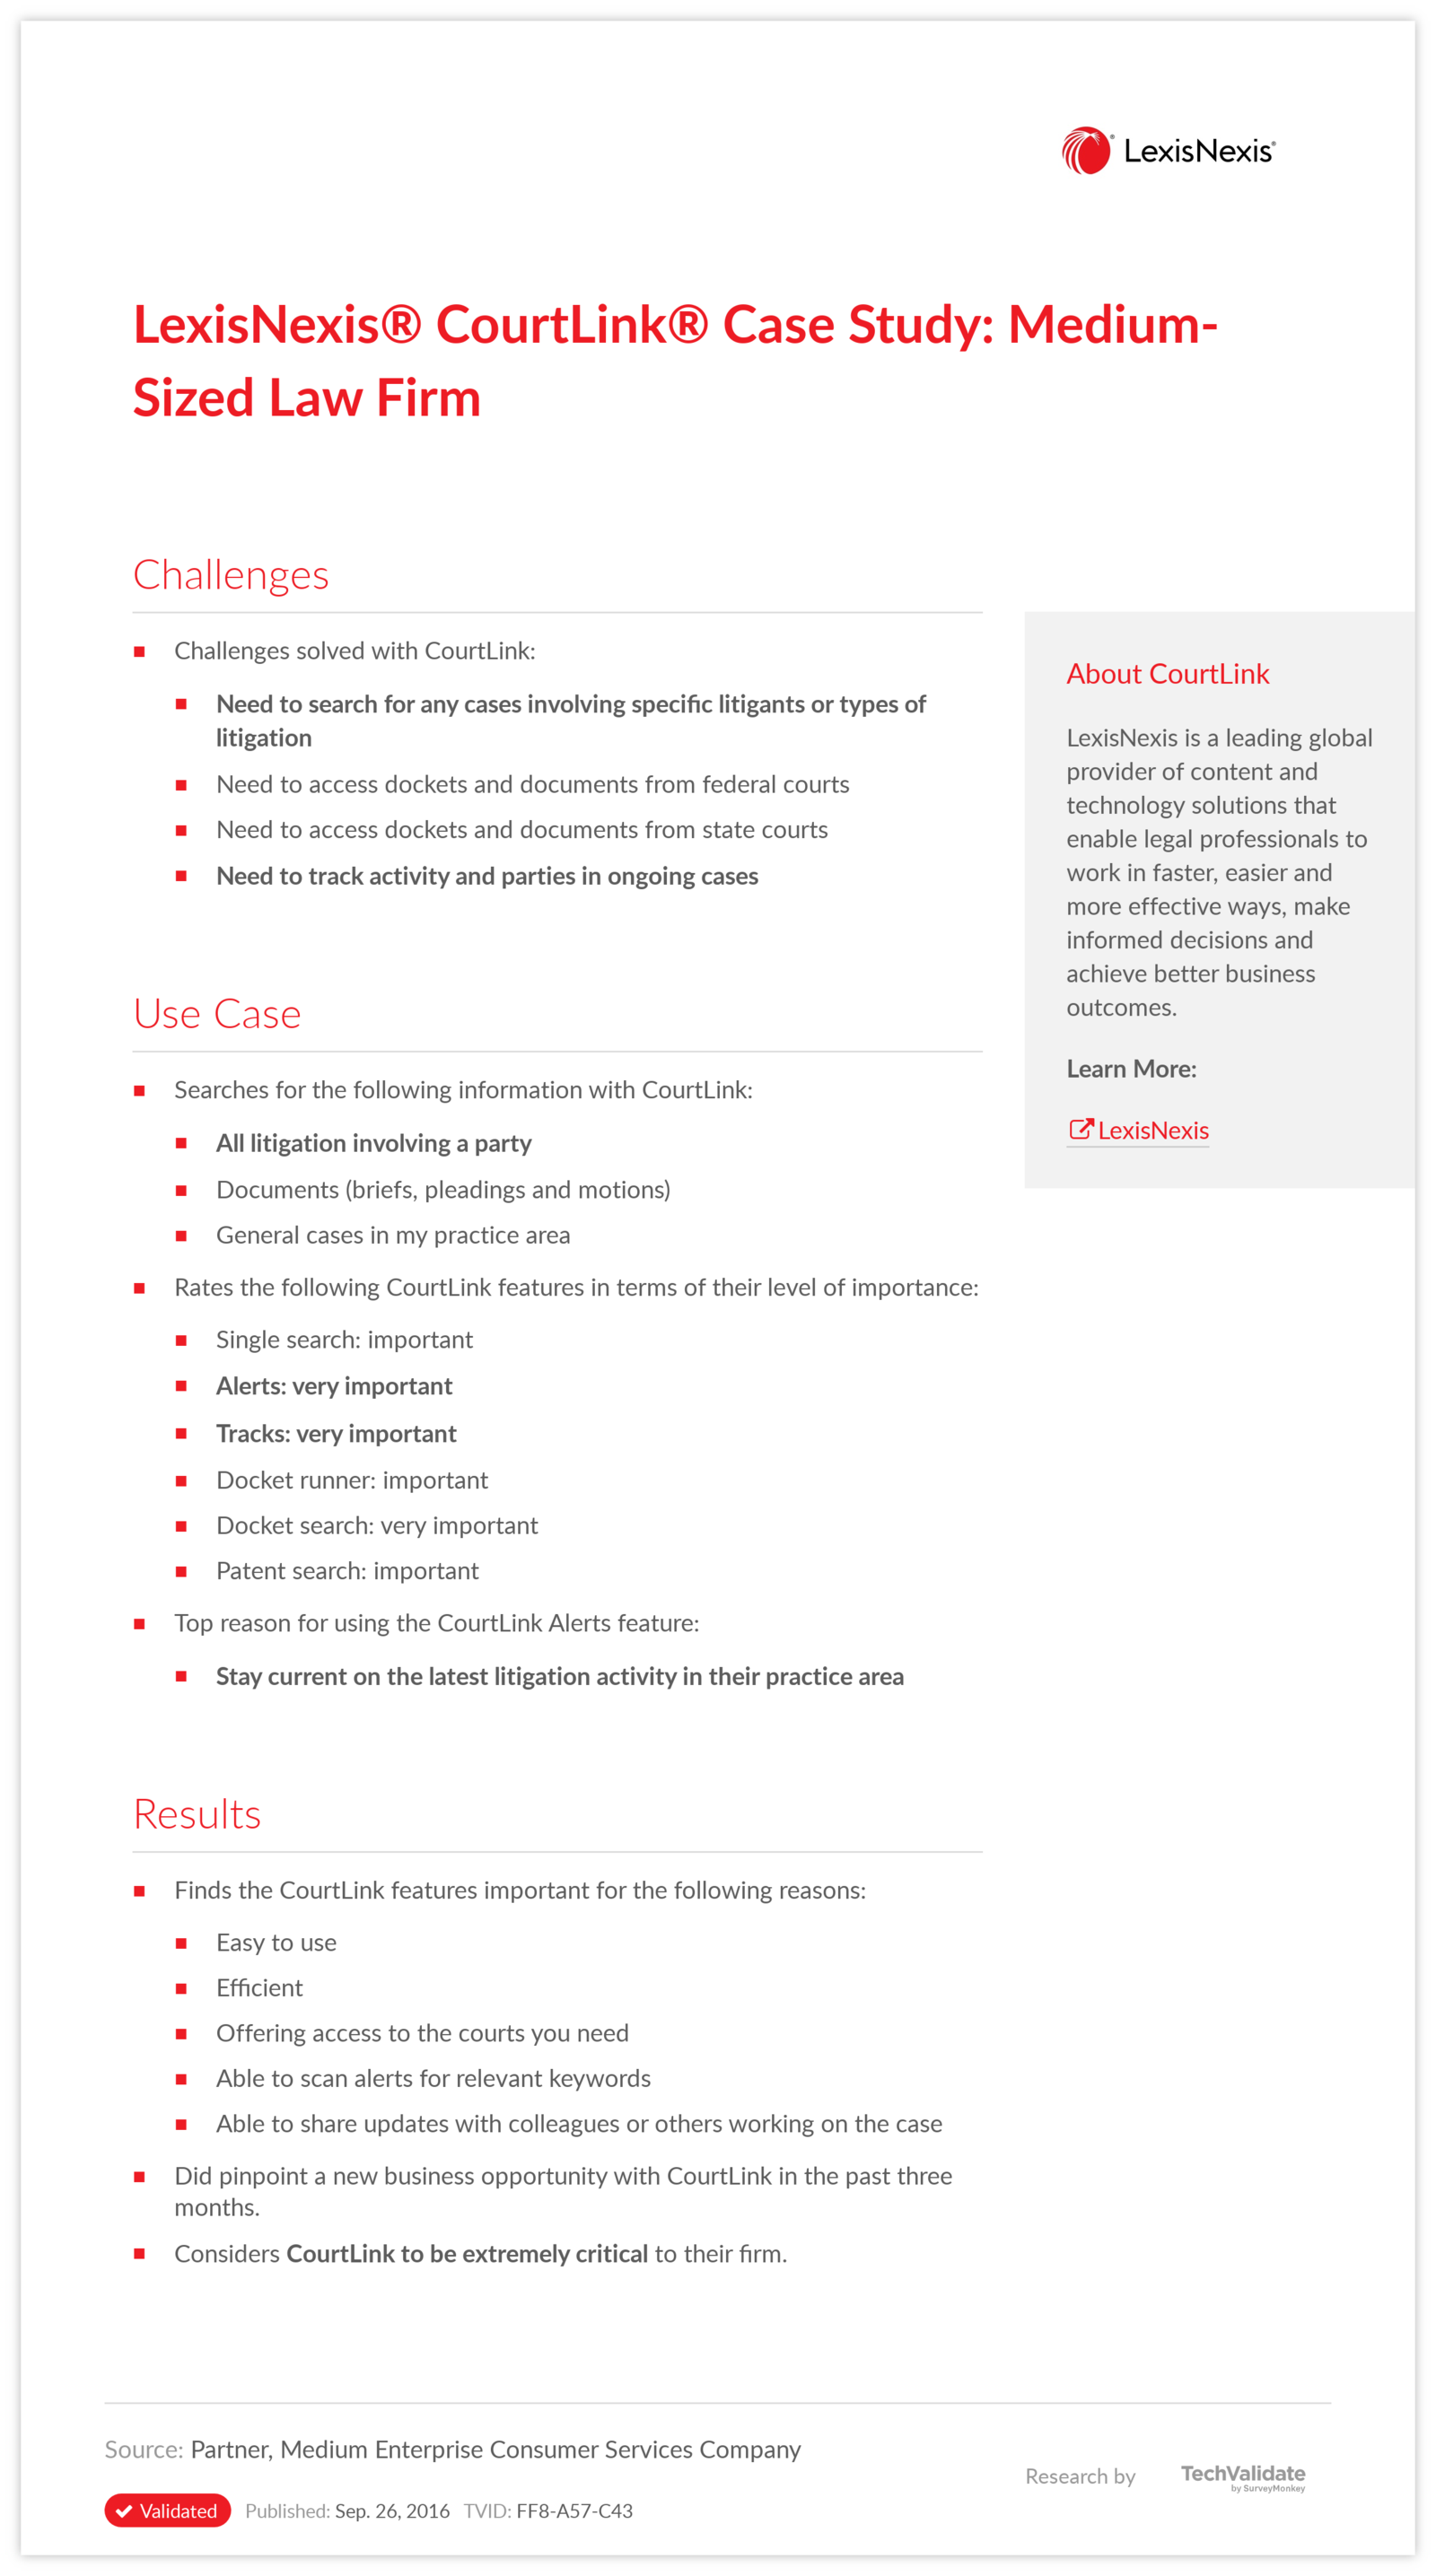 LexisNexis® CourtLink® Case Study: Medium-Sized Law Firm